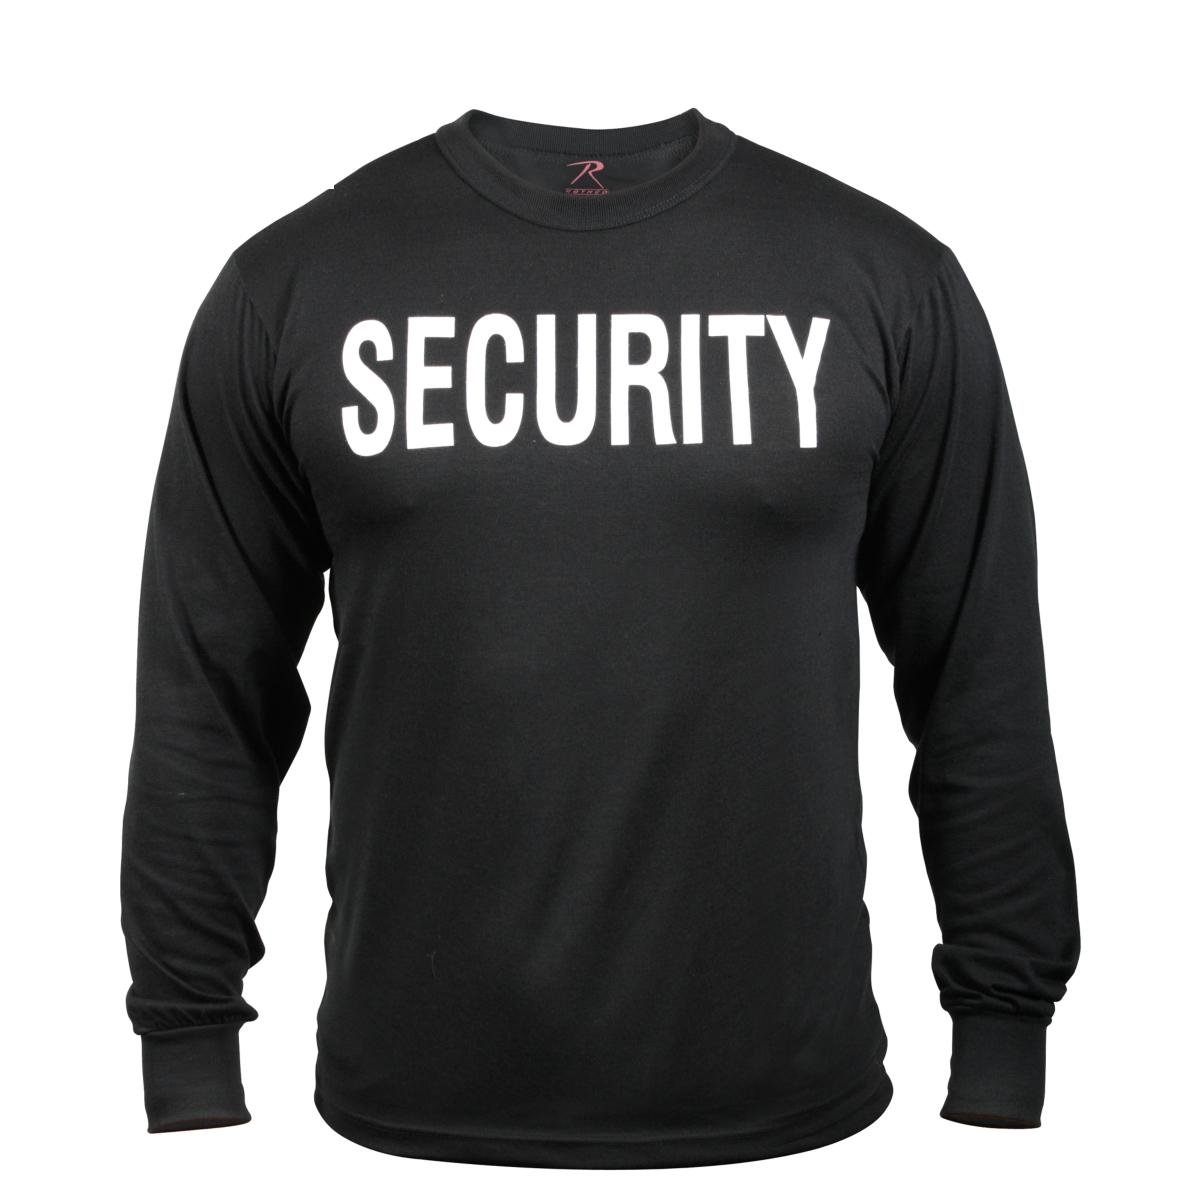 Rothco 2-Sided L/S T-Shirt/Security - Black/XX-Large